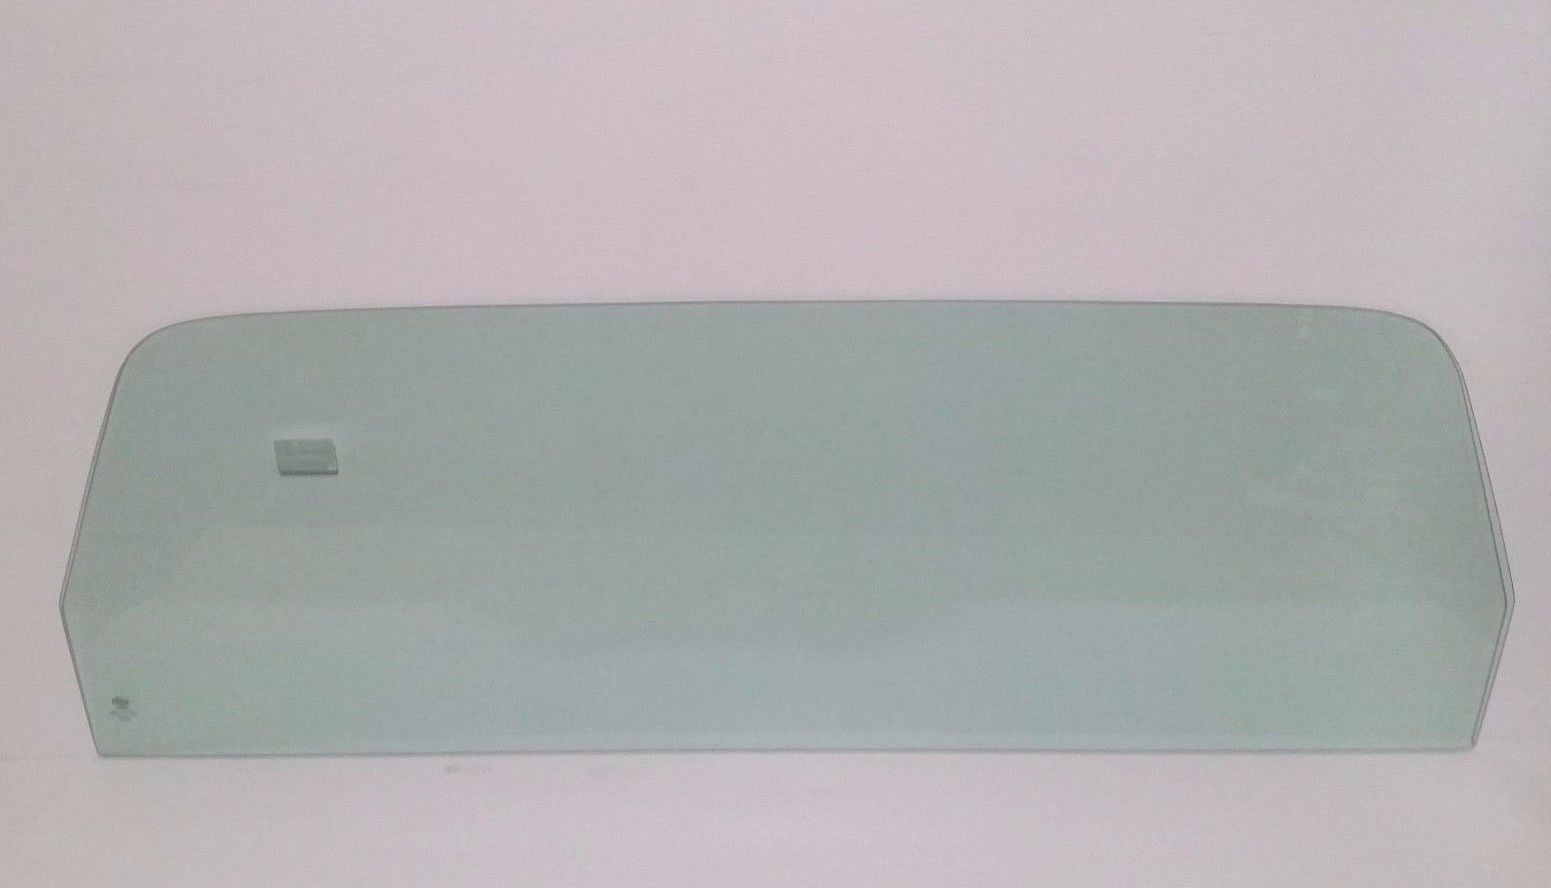 1973-1991 Chevy, GMC Suburban Rear Back Glass / Tailgate Window